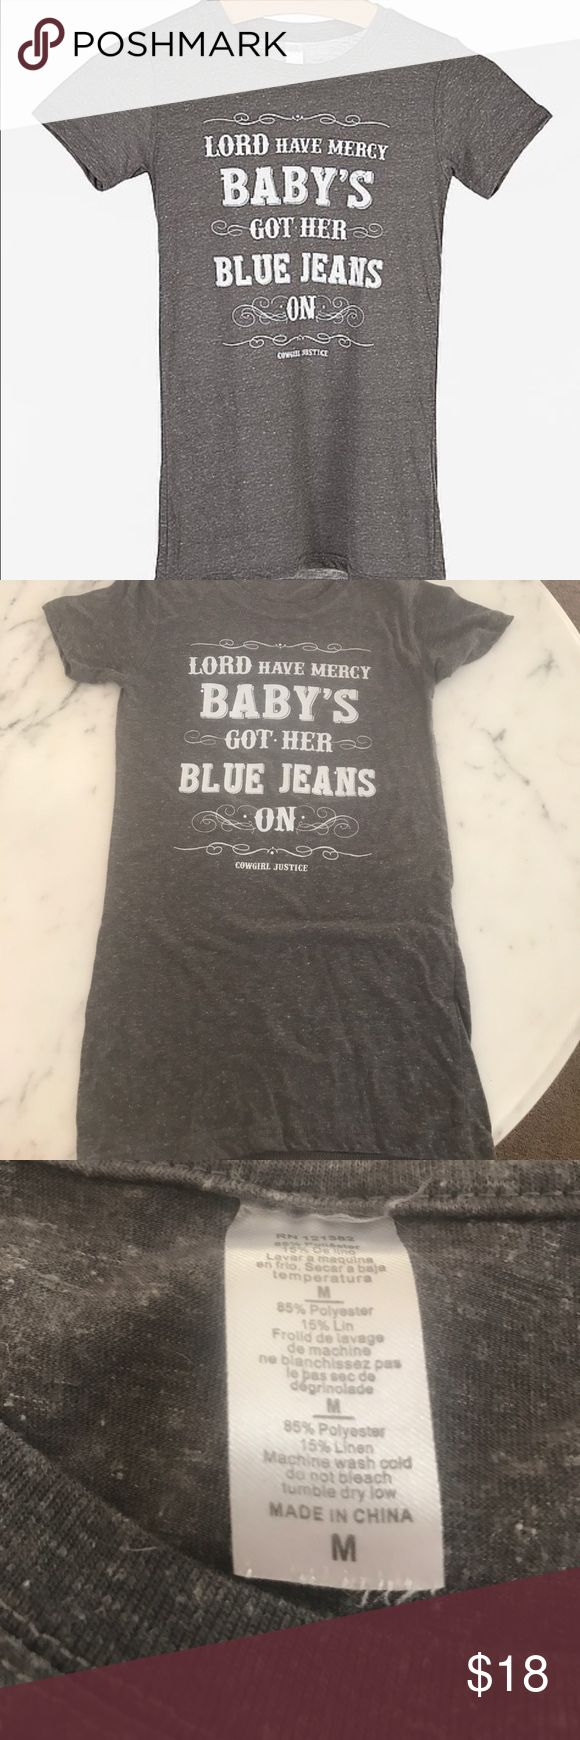 907 Best General Images On Pinterest Concert T Shirts Tendencies Tshirt Stop Smoking Hitam Xxl Cowgirl Justice Graphic Shirt Size M